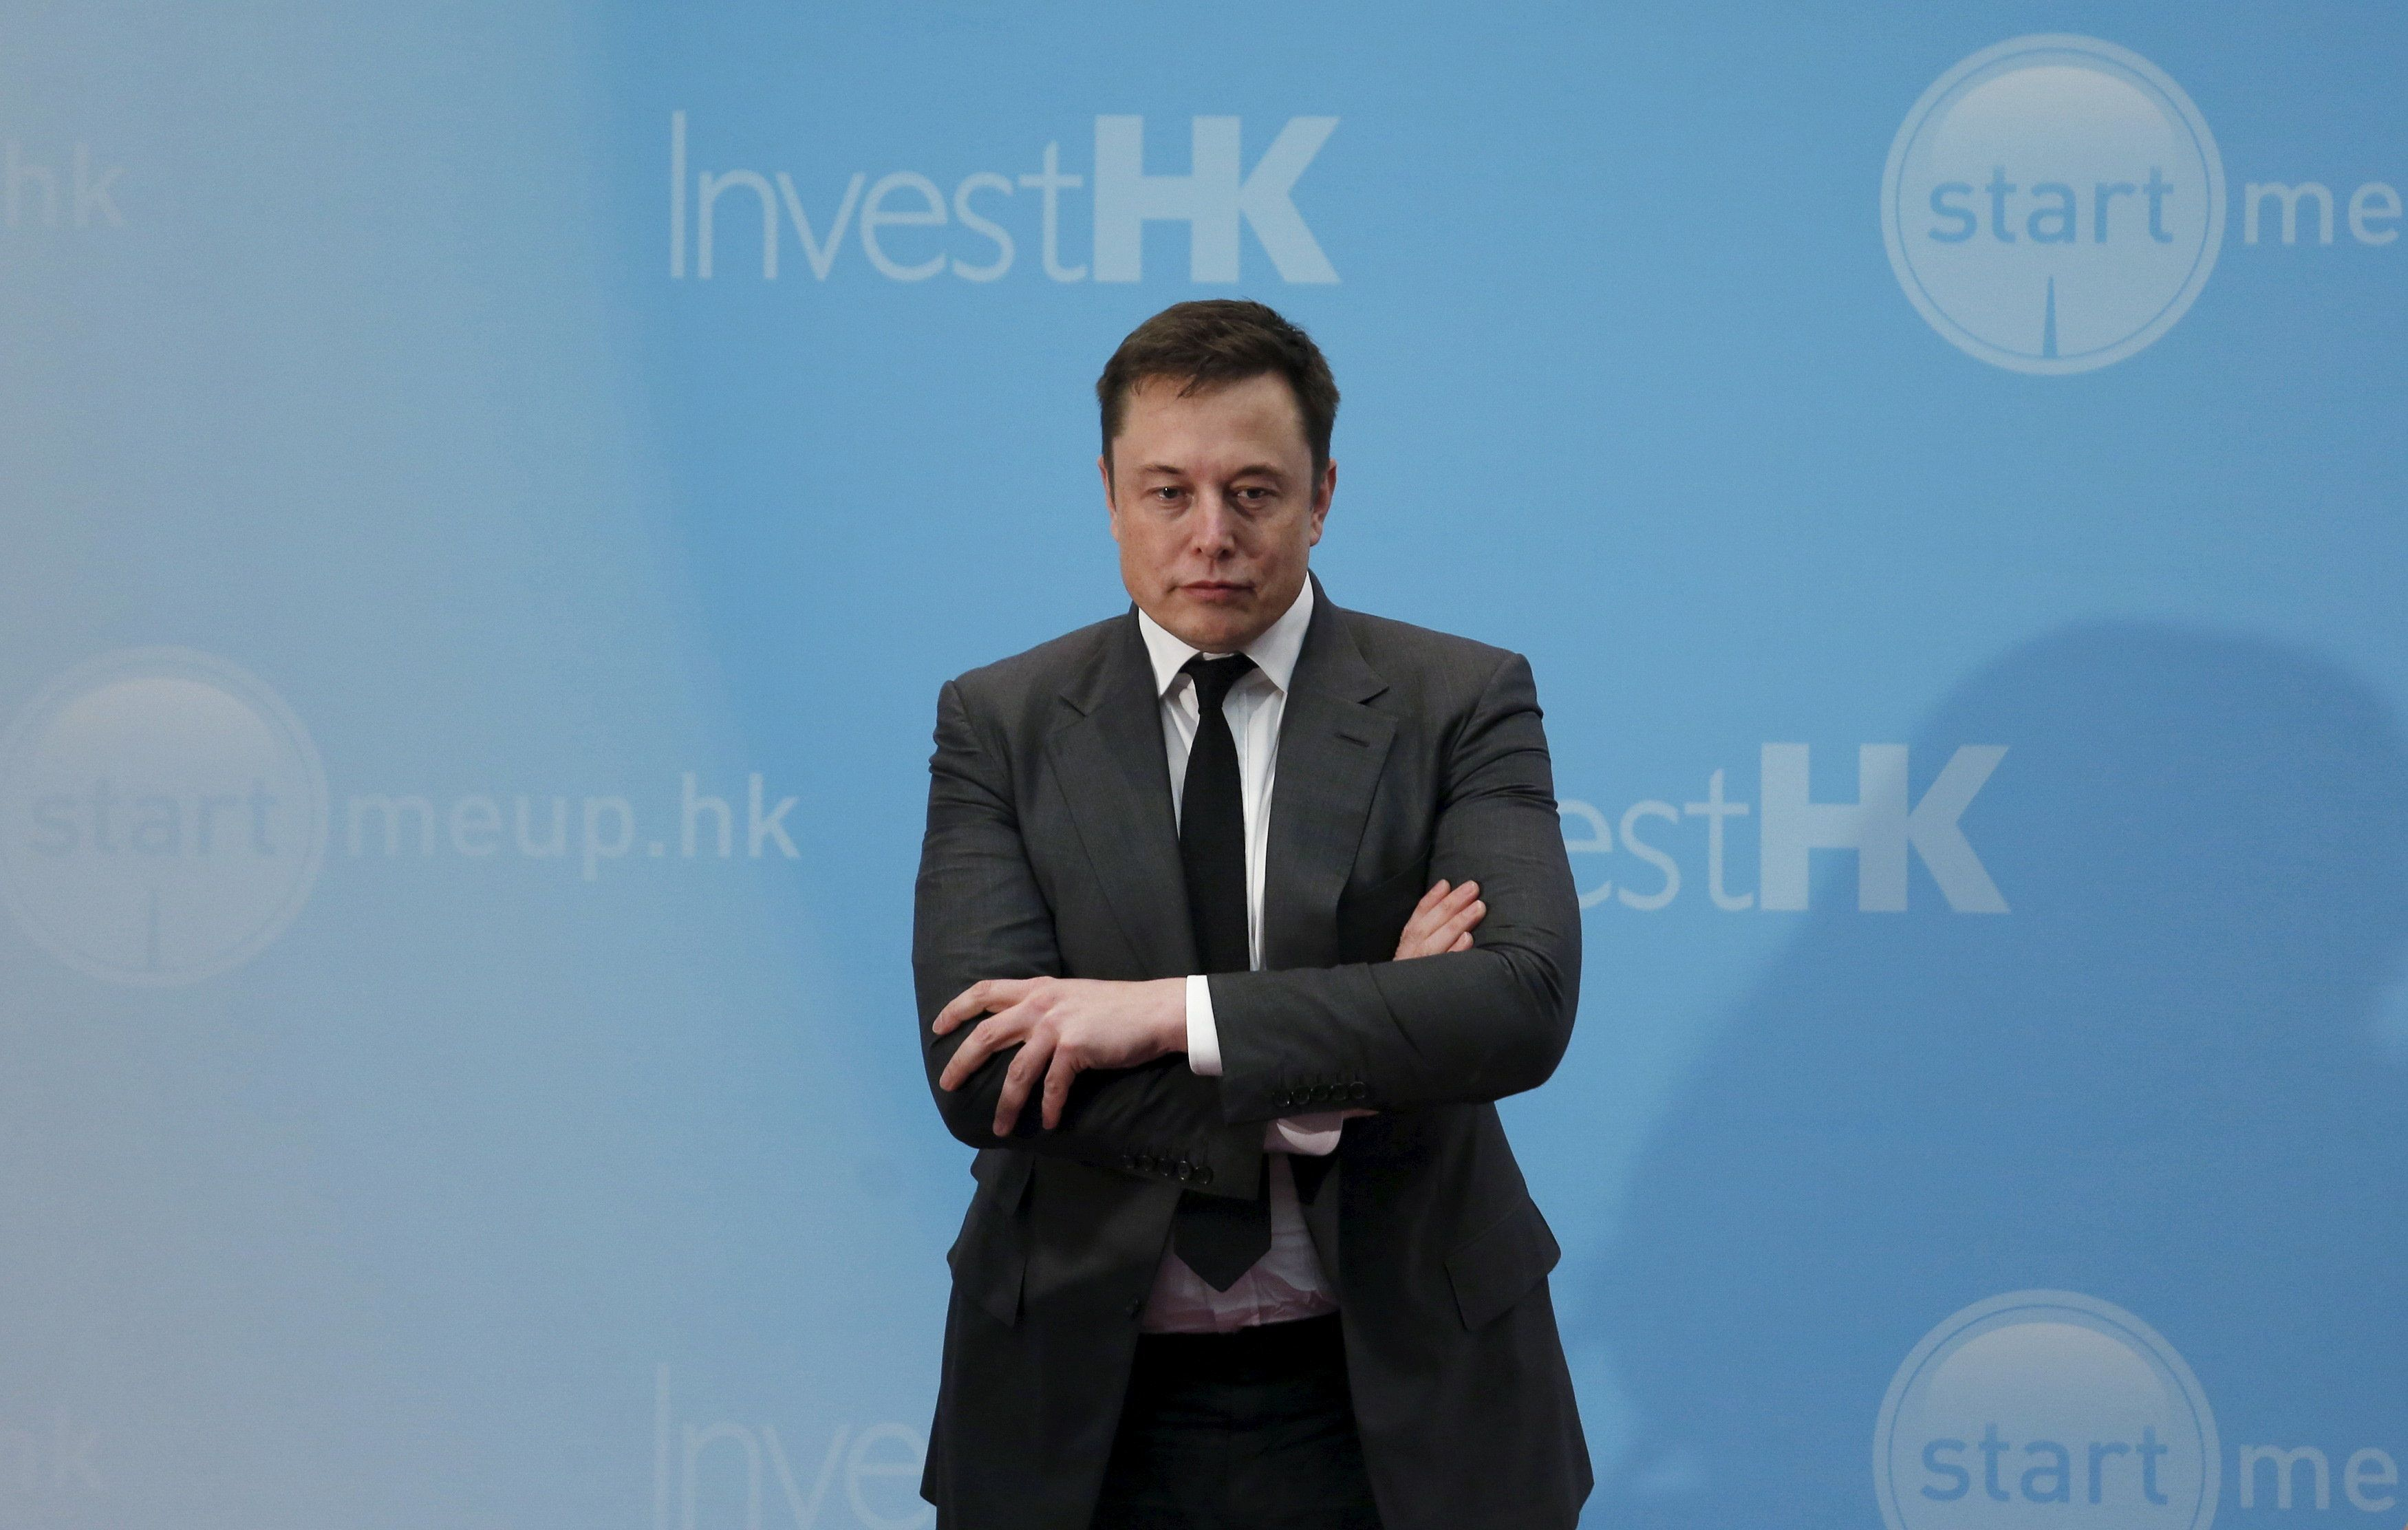 Tesla Chief Executive Elon Musk stands on the podium as he attends a forum on startups in Hong Kong, China January 26, 2016.      REUTERS/Bobby Yip/File Photo